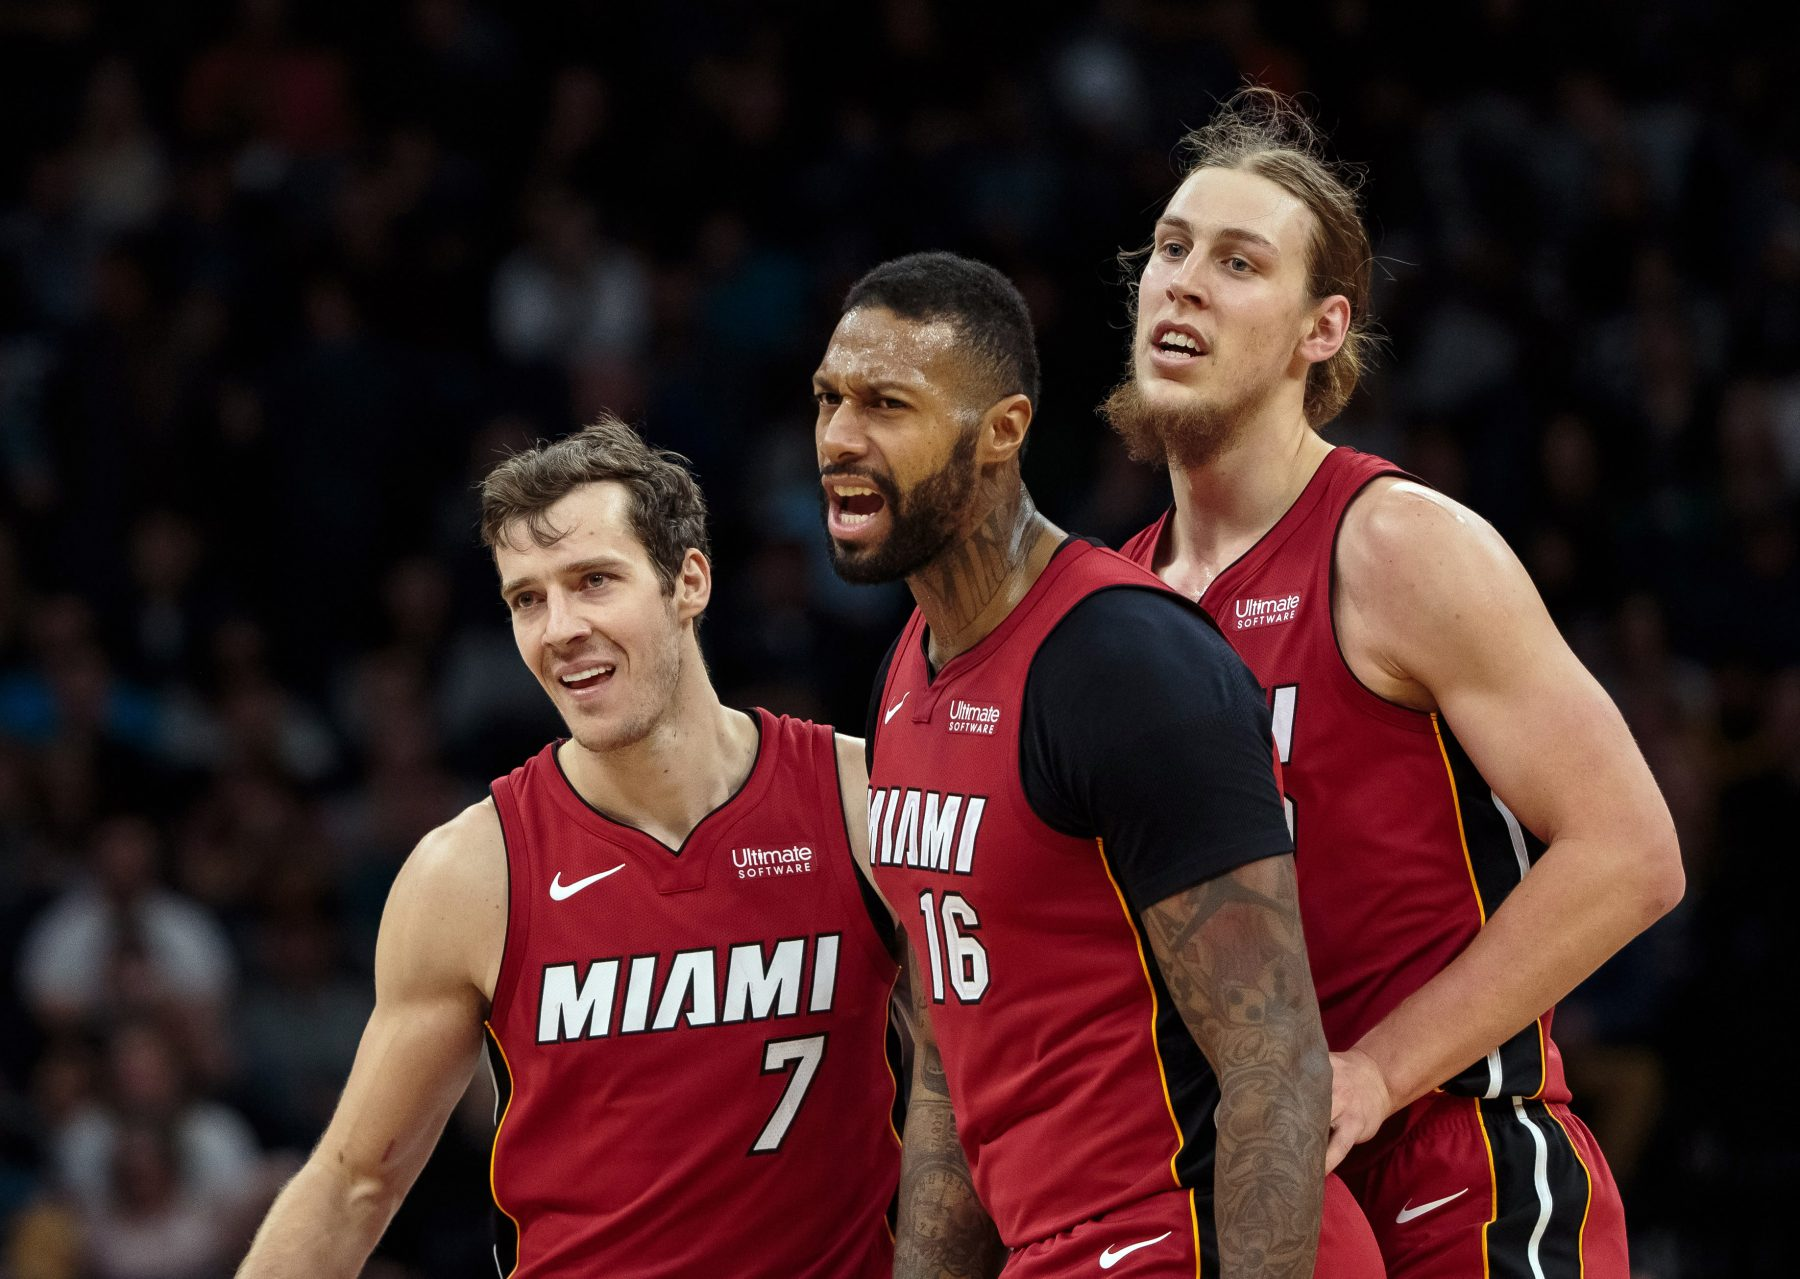 dedc2fe4 Report: Miami Heat Making 4 Players Available in Trade Talks - Heat ...